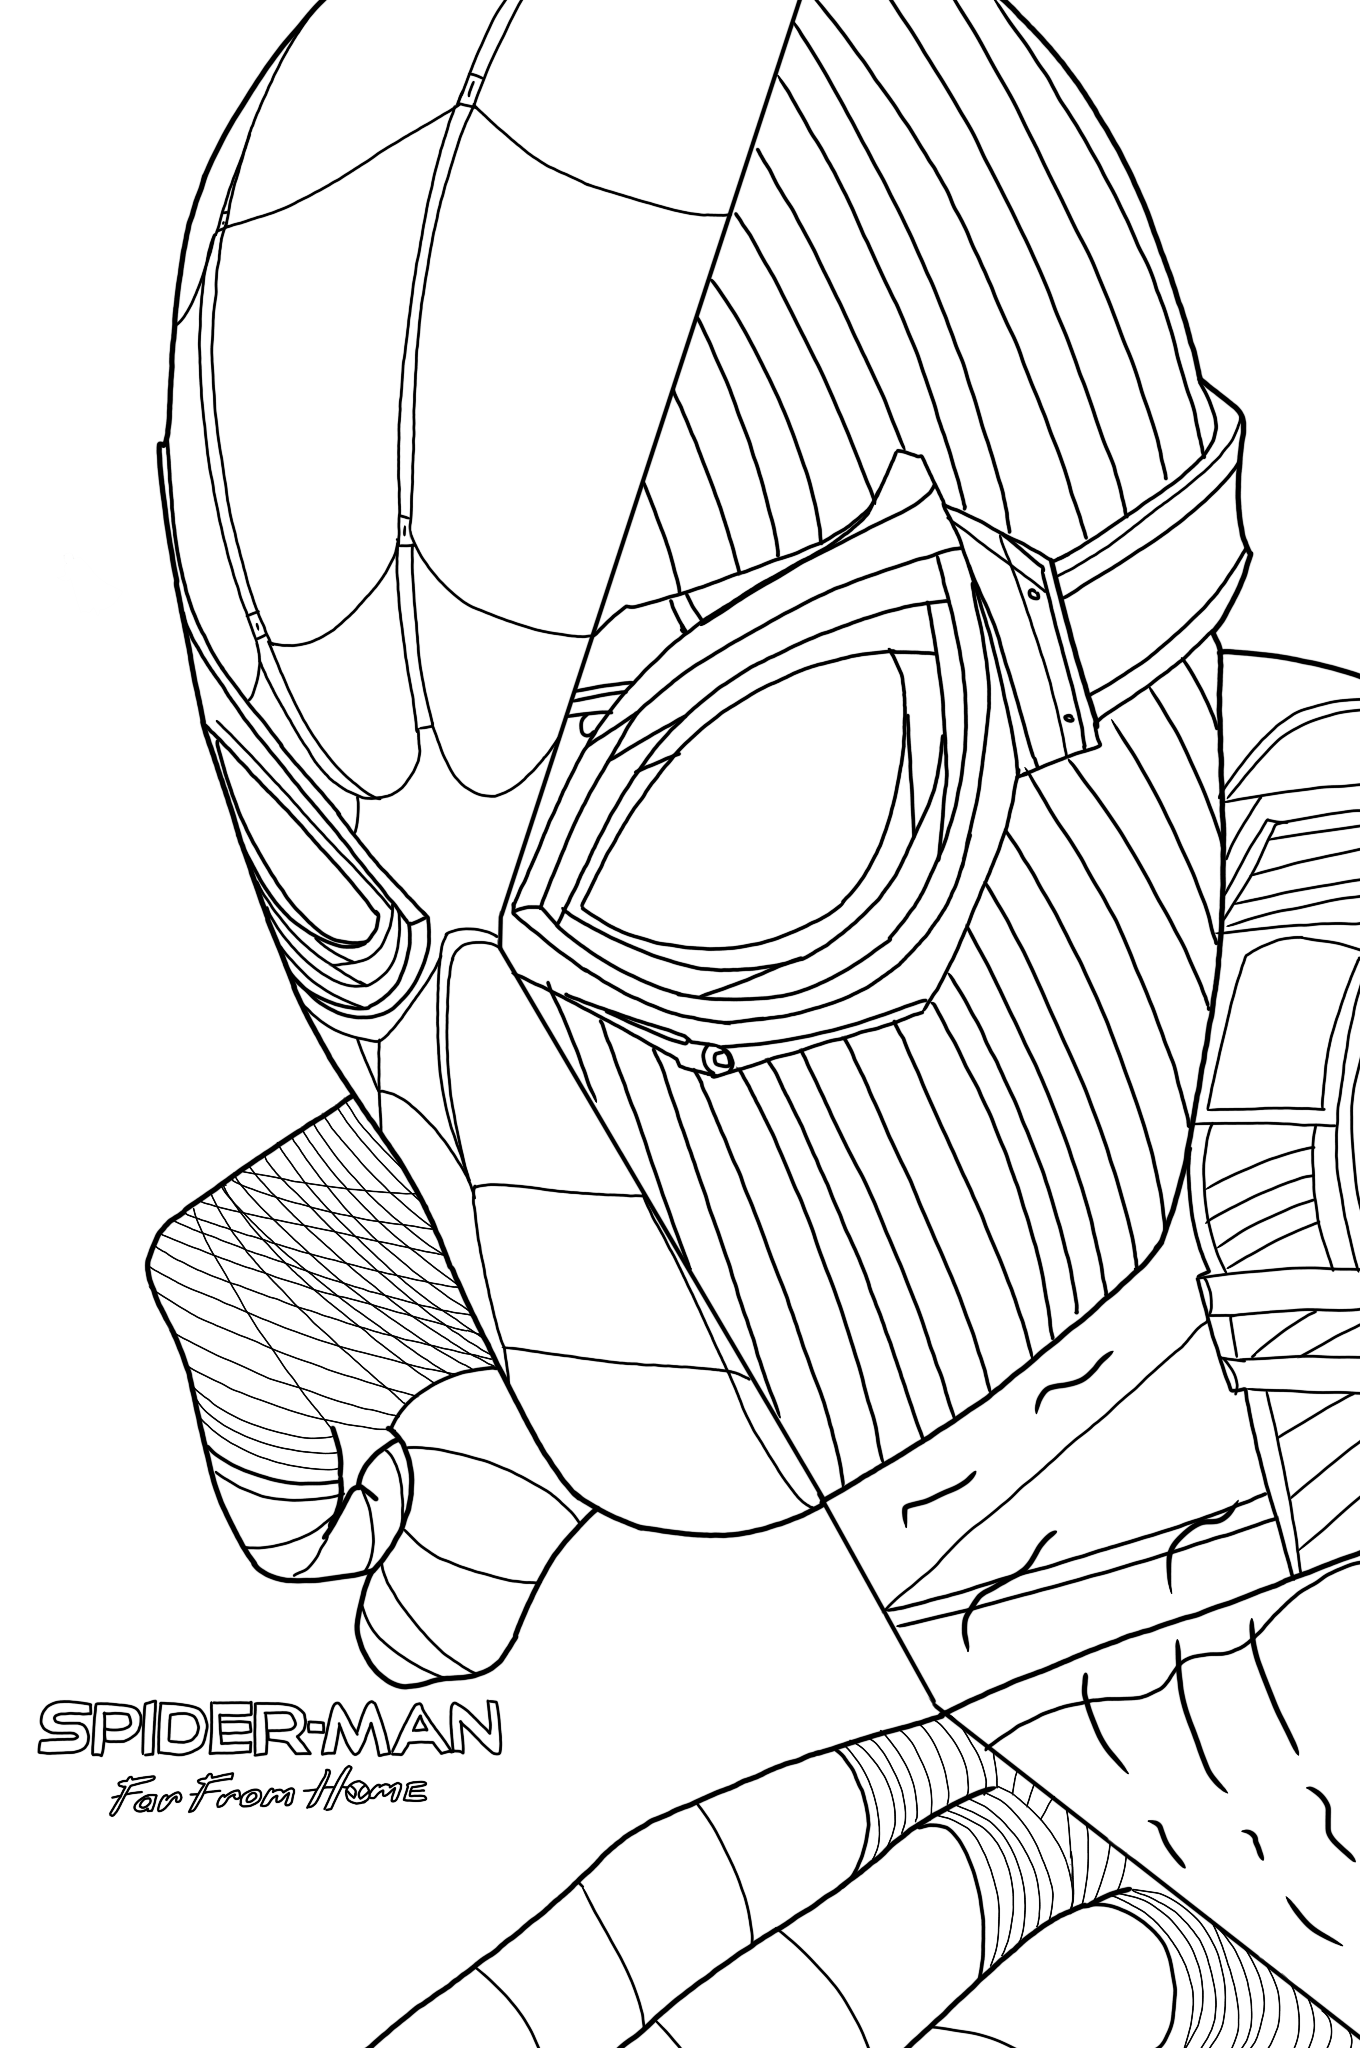 spider man stealth suit coloring page spider man superhero coloring pages stealth coloring spider man page suit